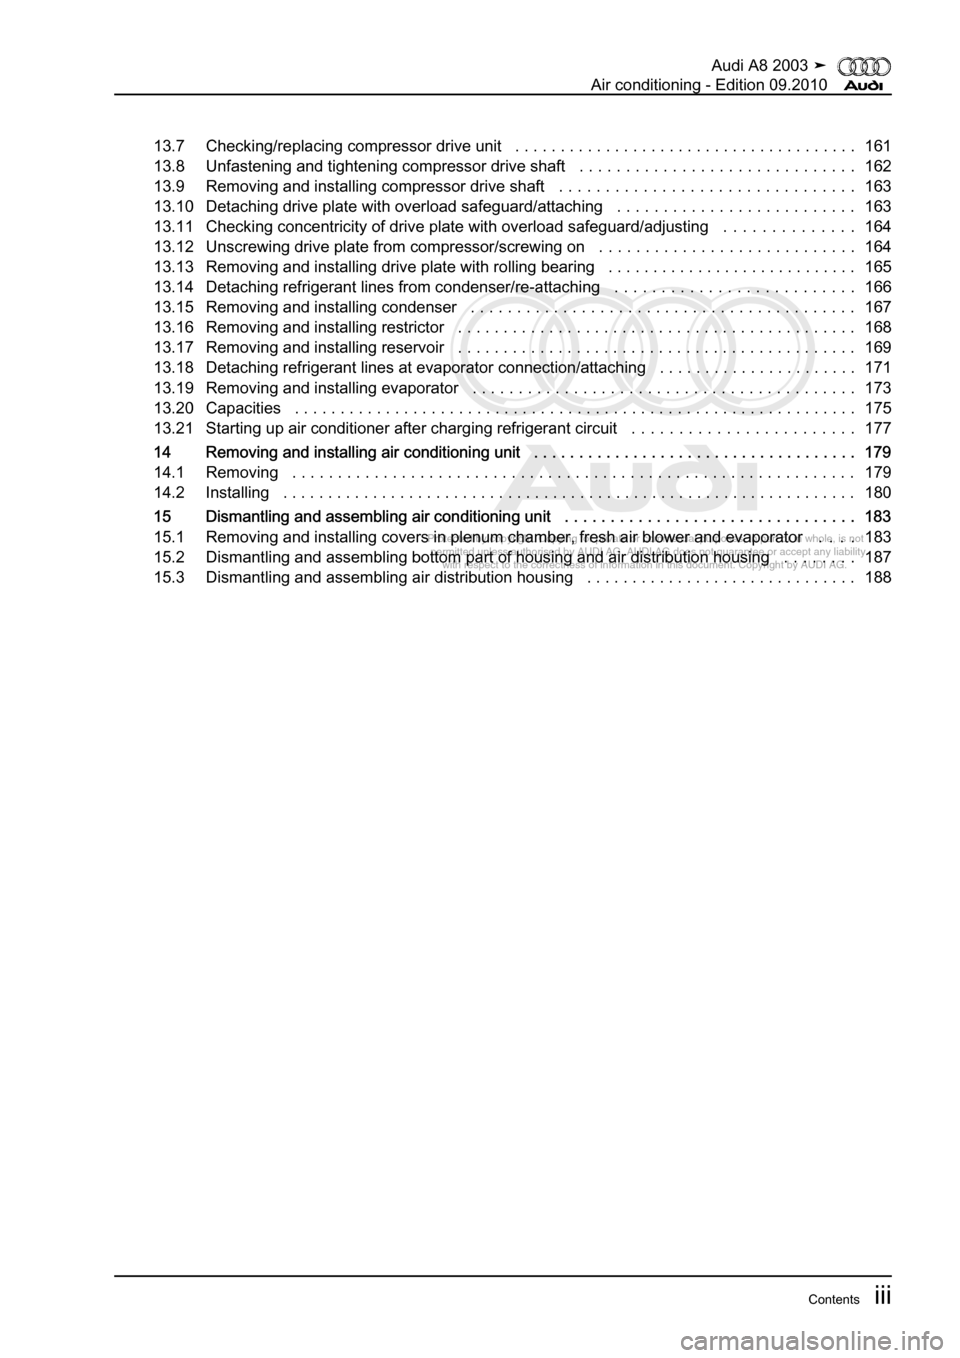 AUDI A8 2003 D3 / 2.G Air Condition Workshop Manual, Page 5